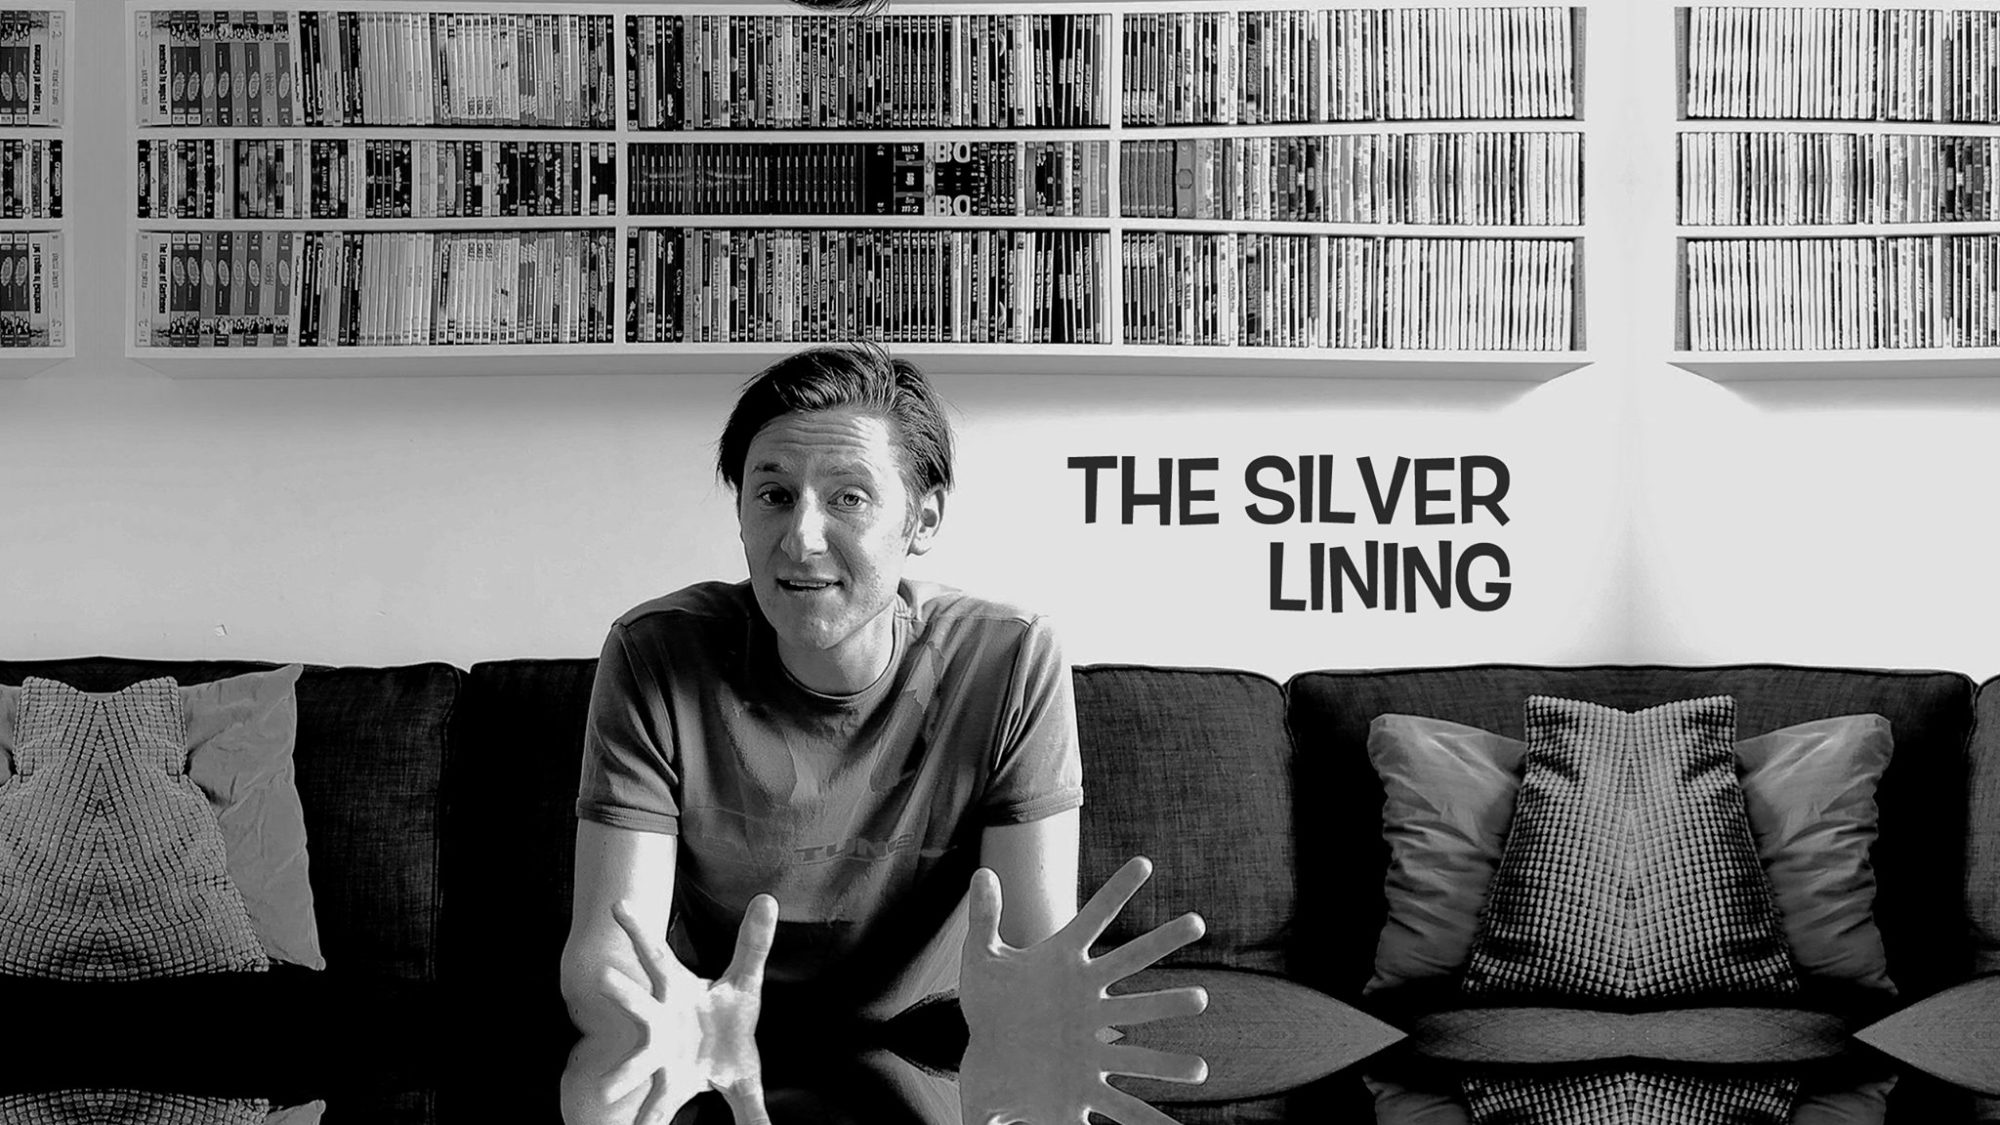 The Silver Lining – Leven met MS